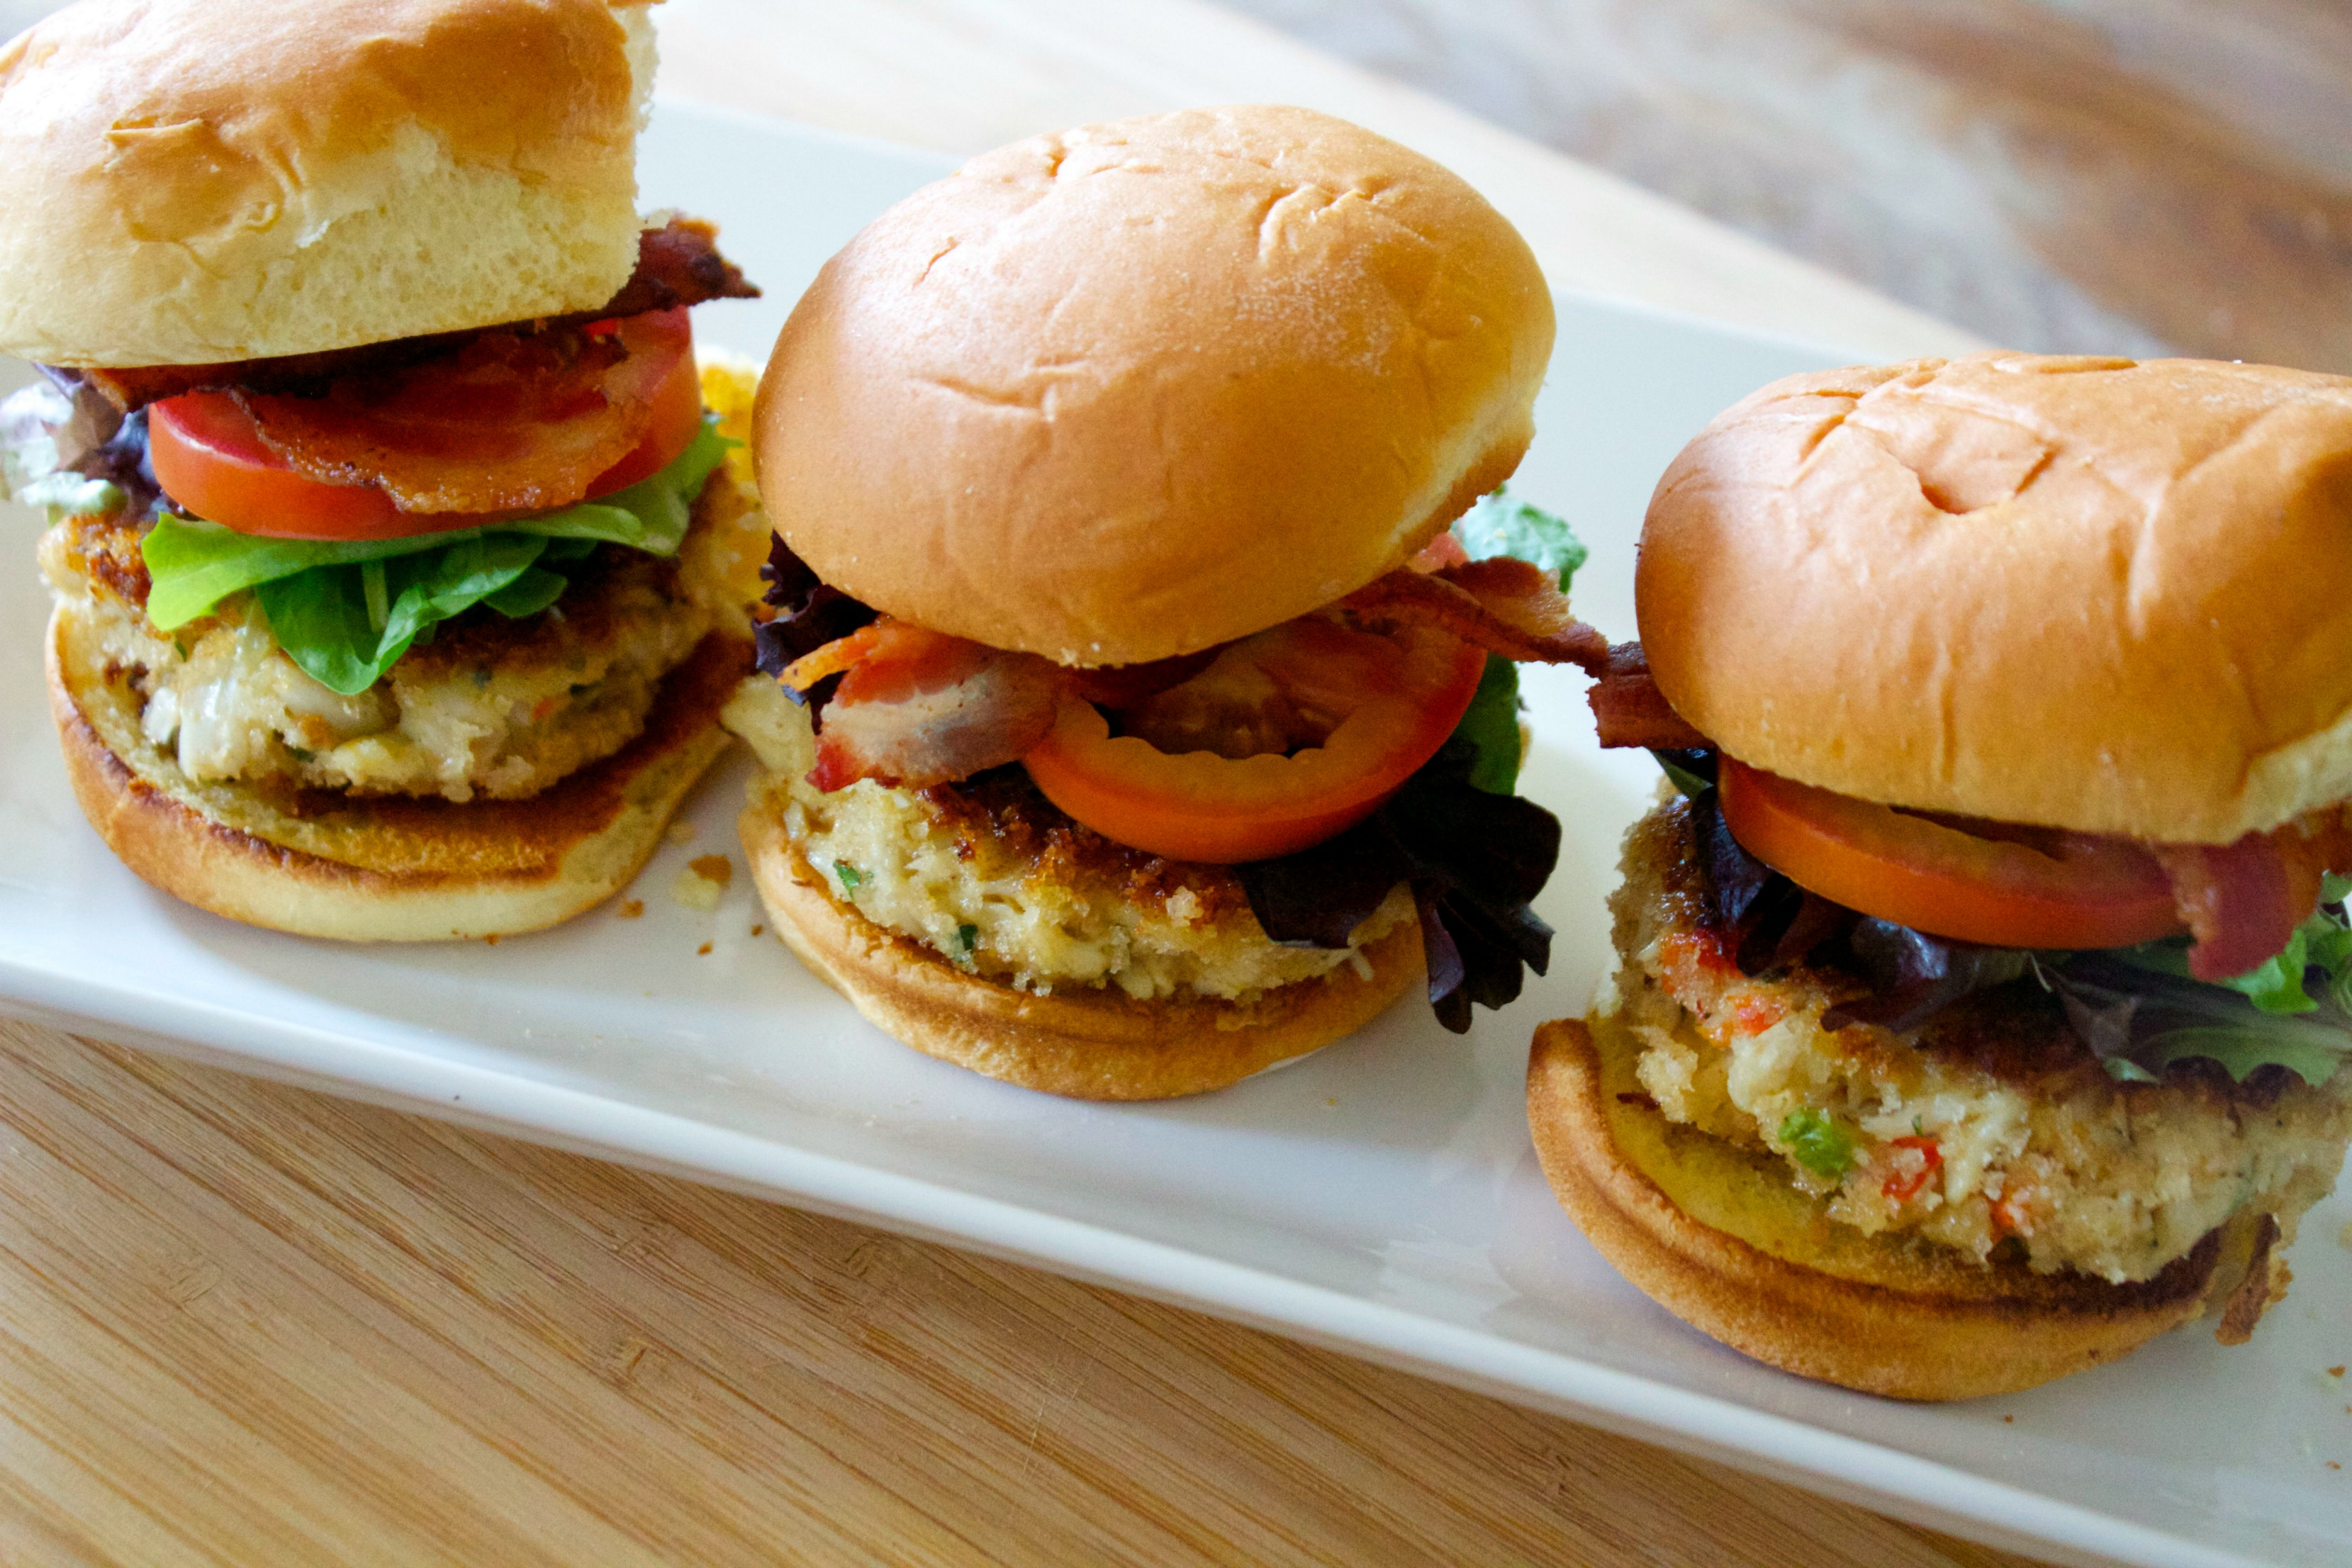 Crab sliders with bacon, lettuce, and tomato.